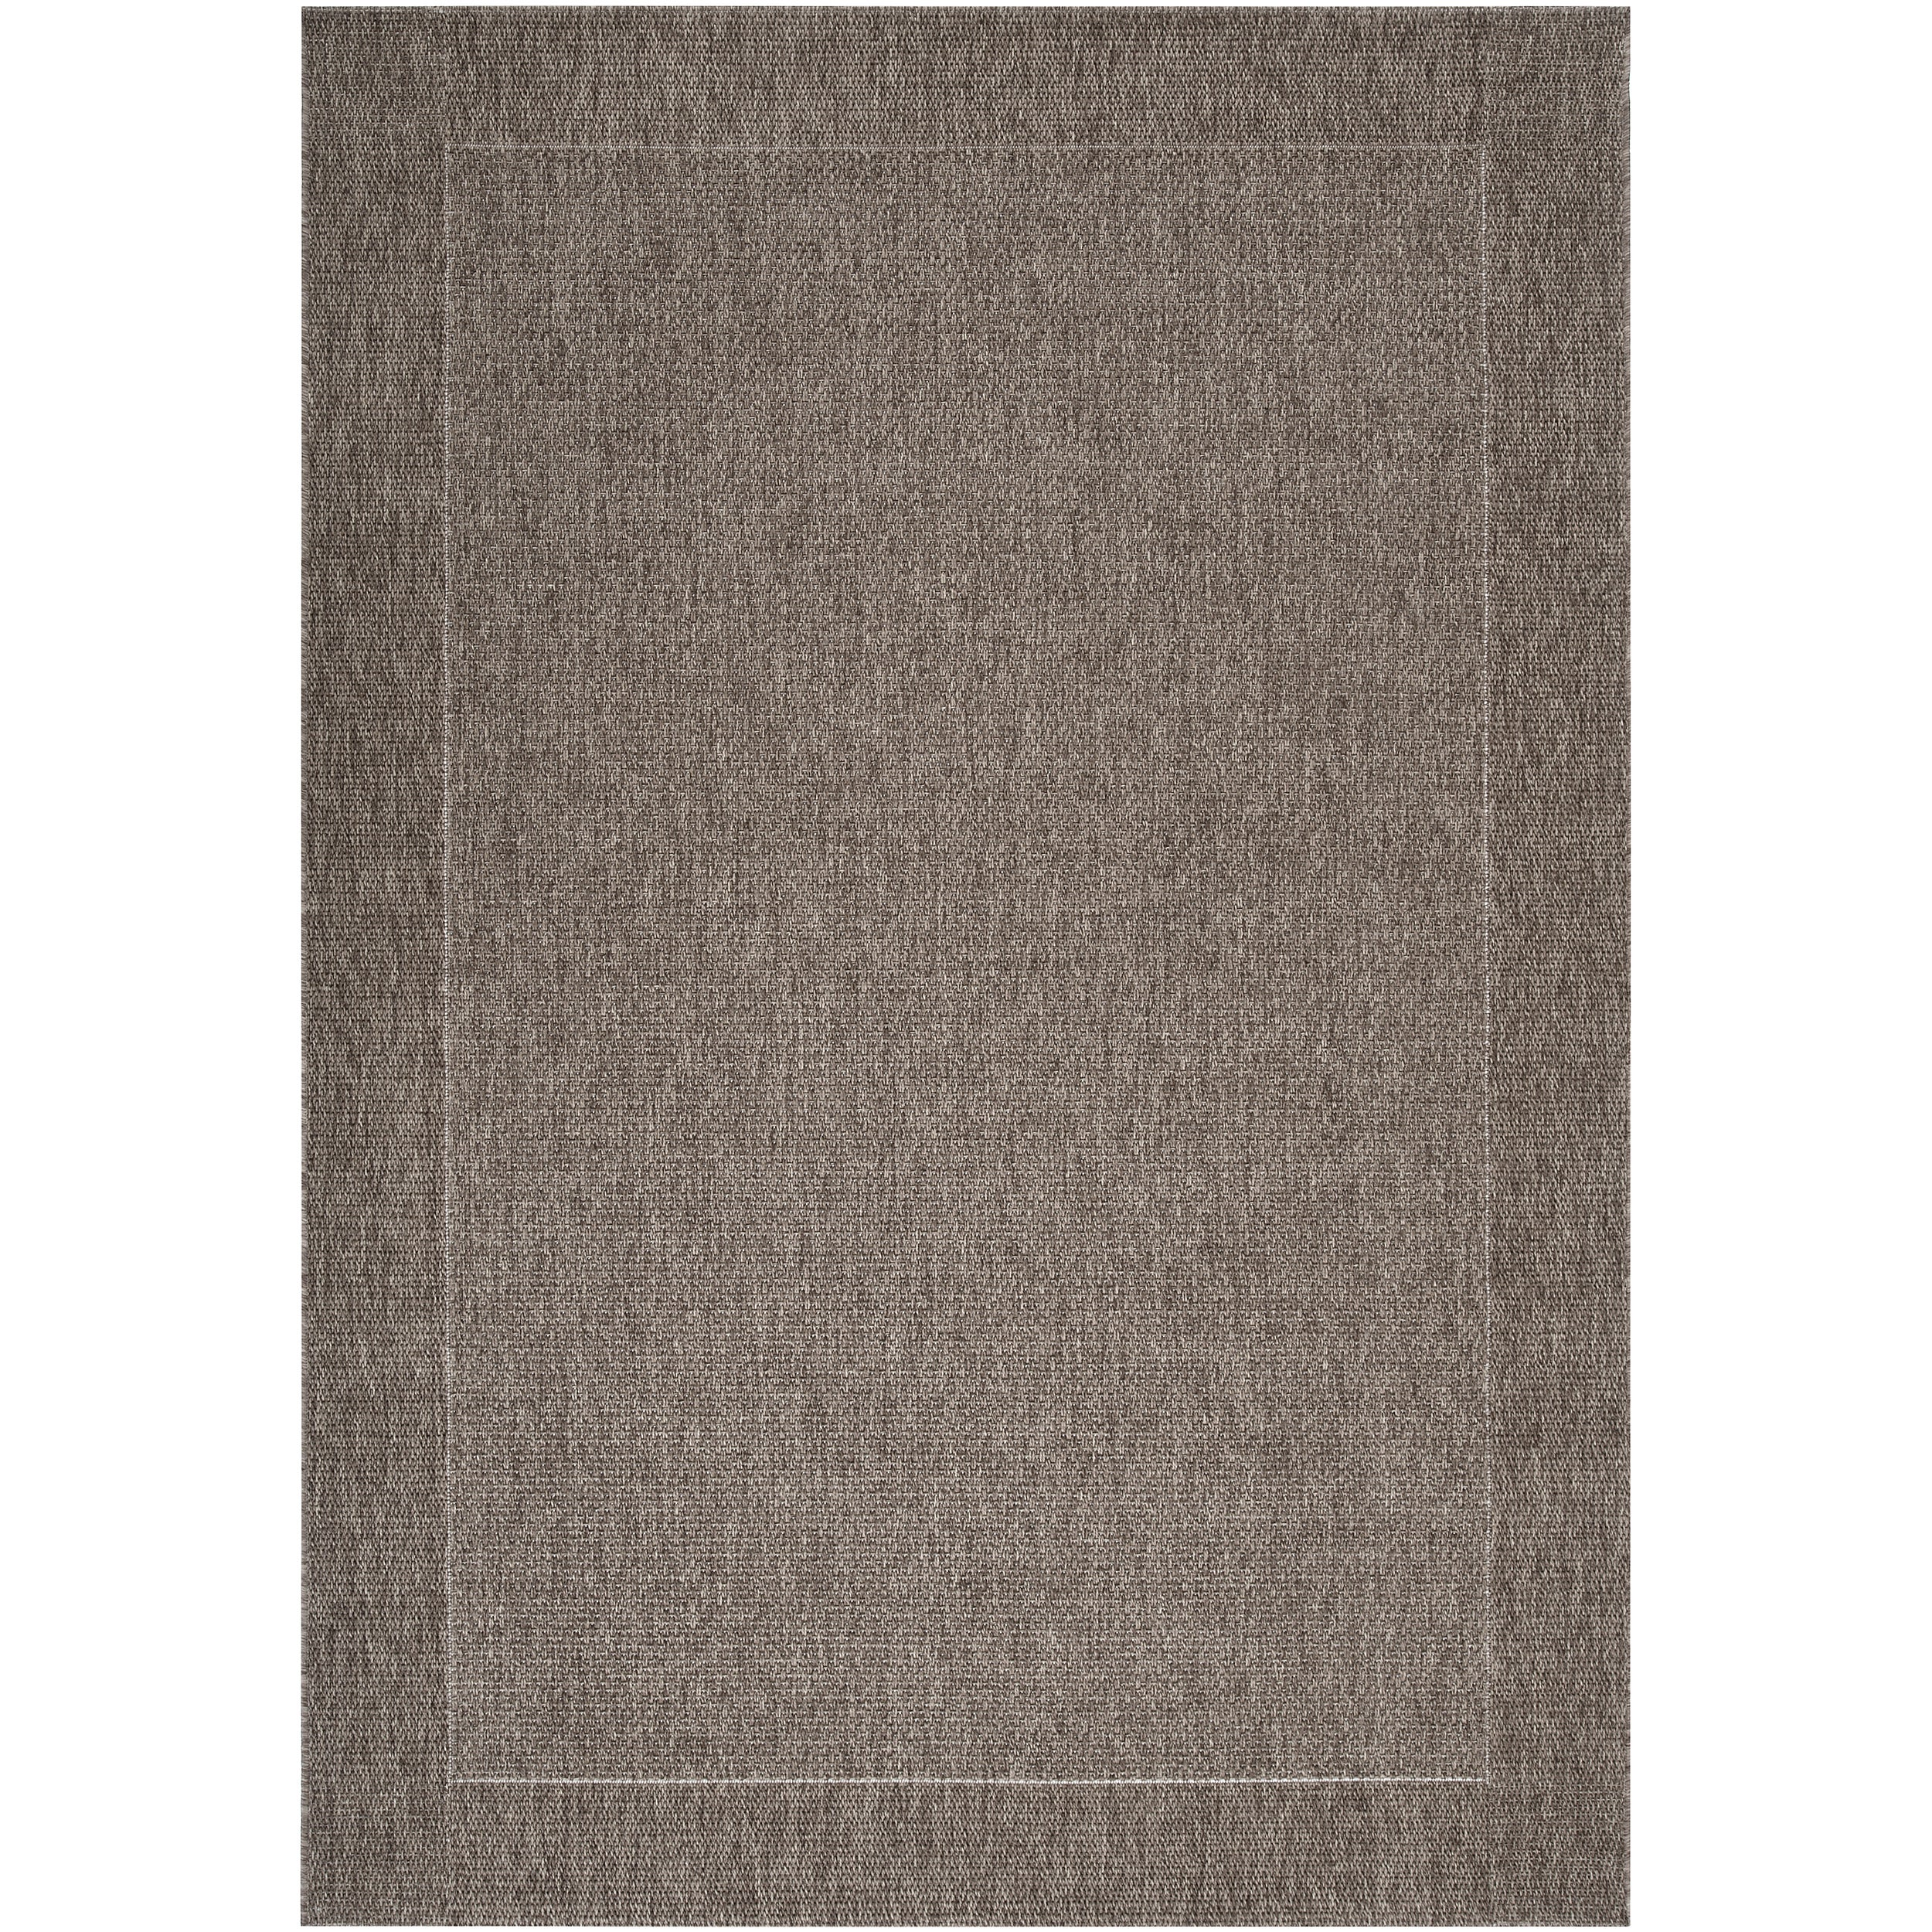 Woven Gray Indoor/Outdoor Border Rug (3'11 x 5'7)